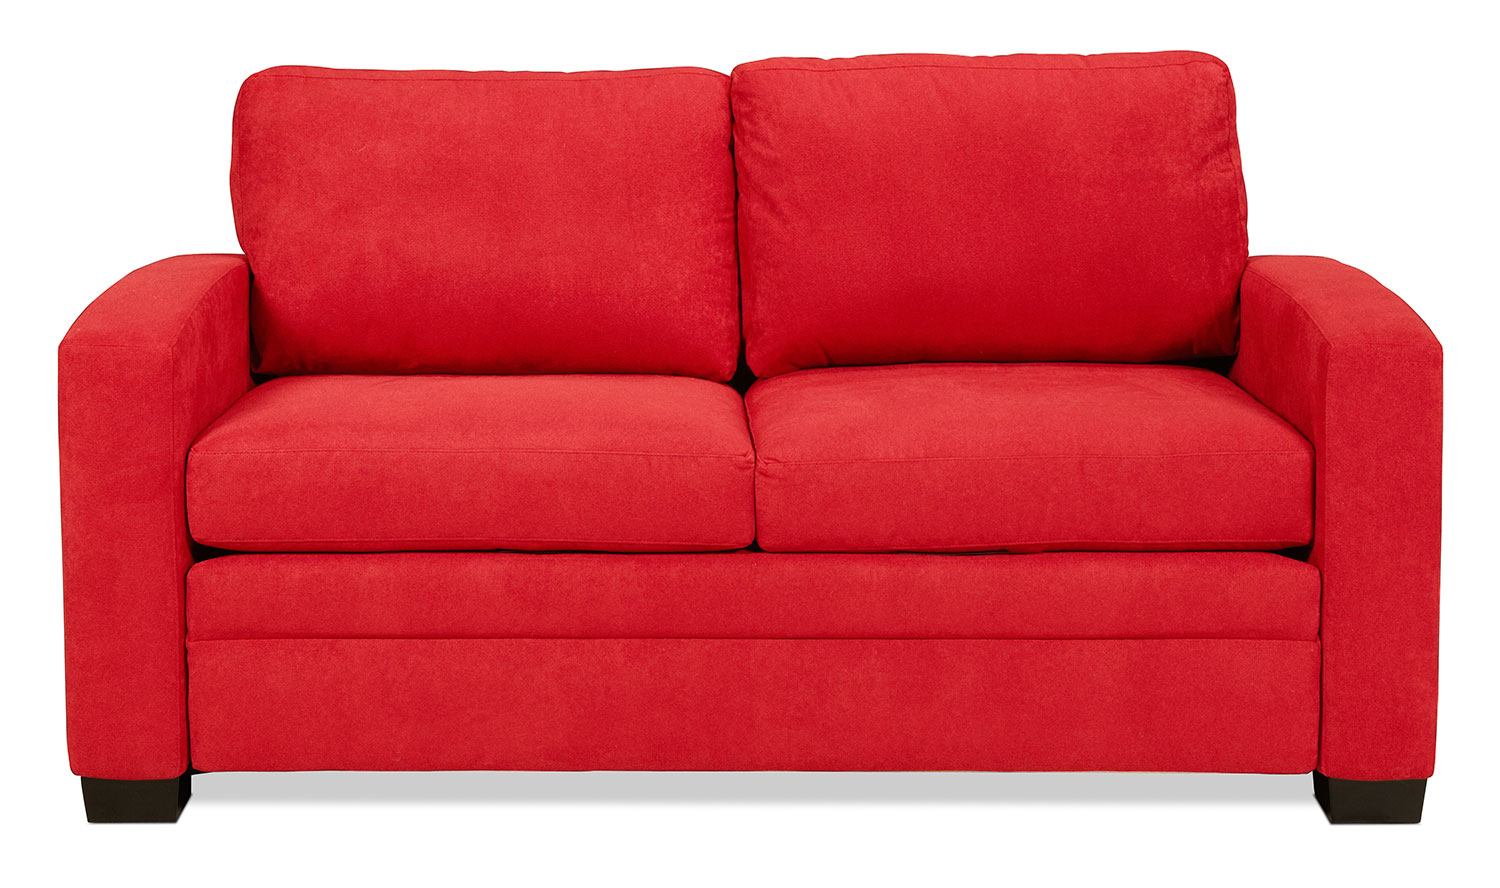 Levin Signature Full Sleeper Sofa - Chili Red